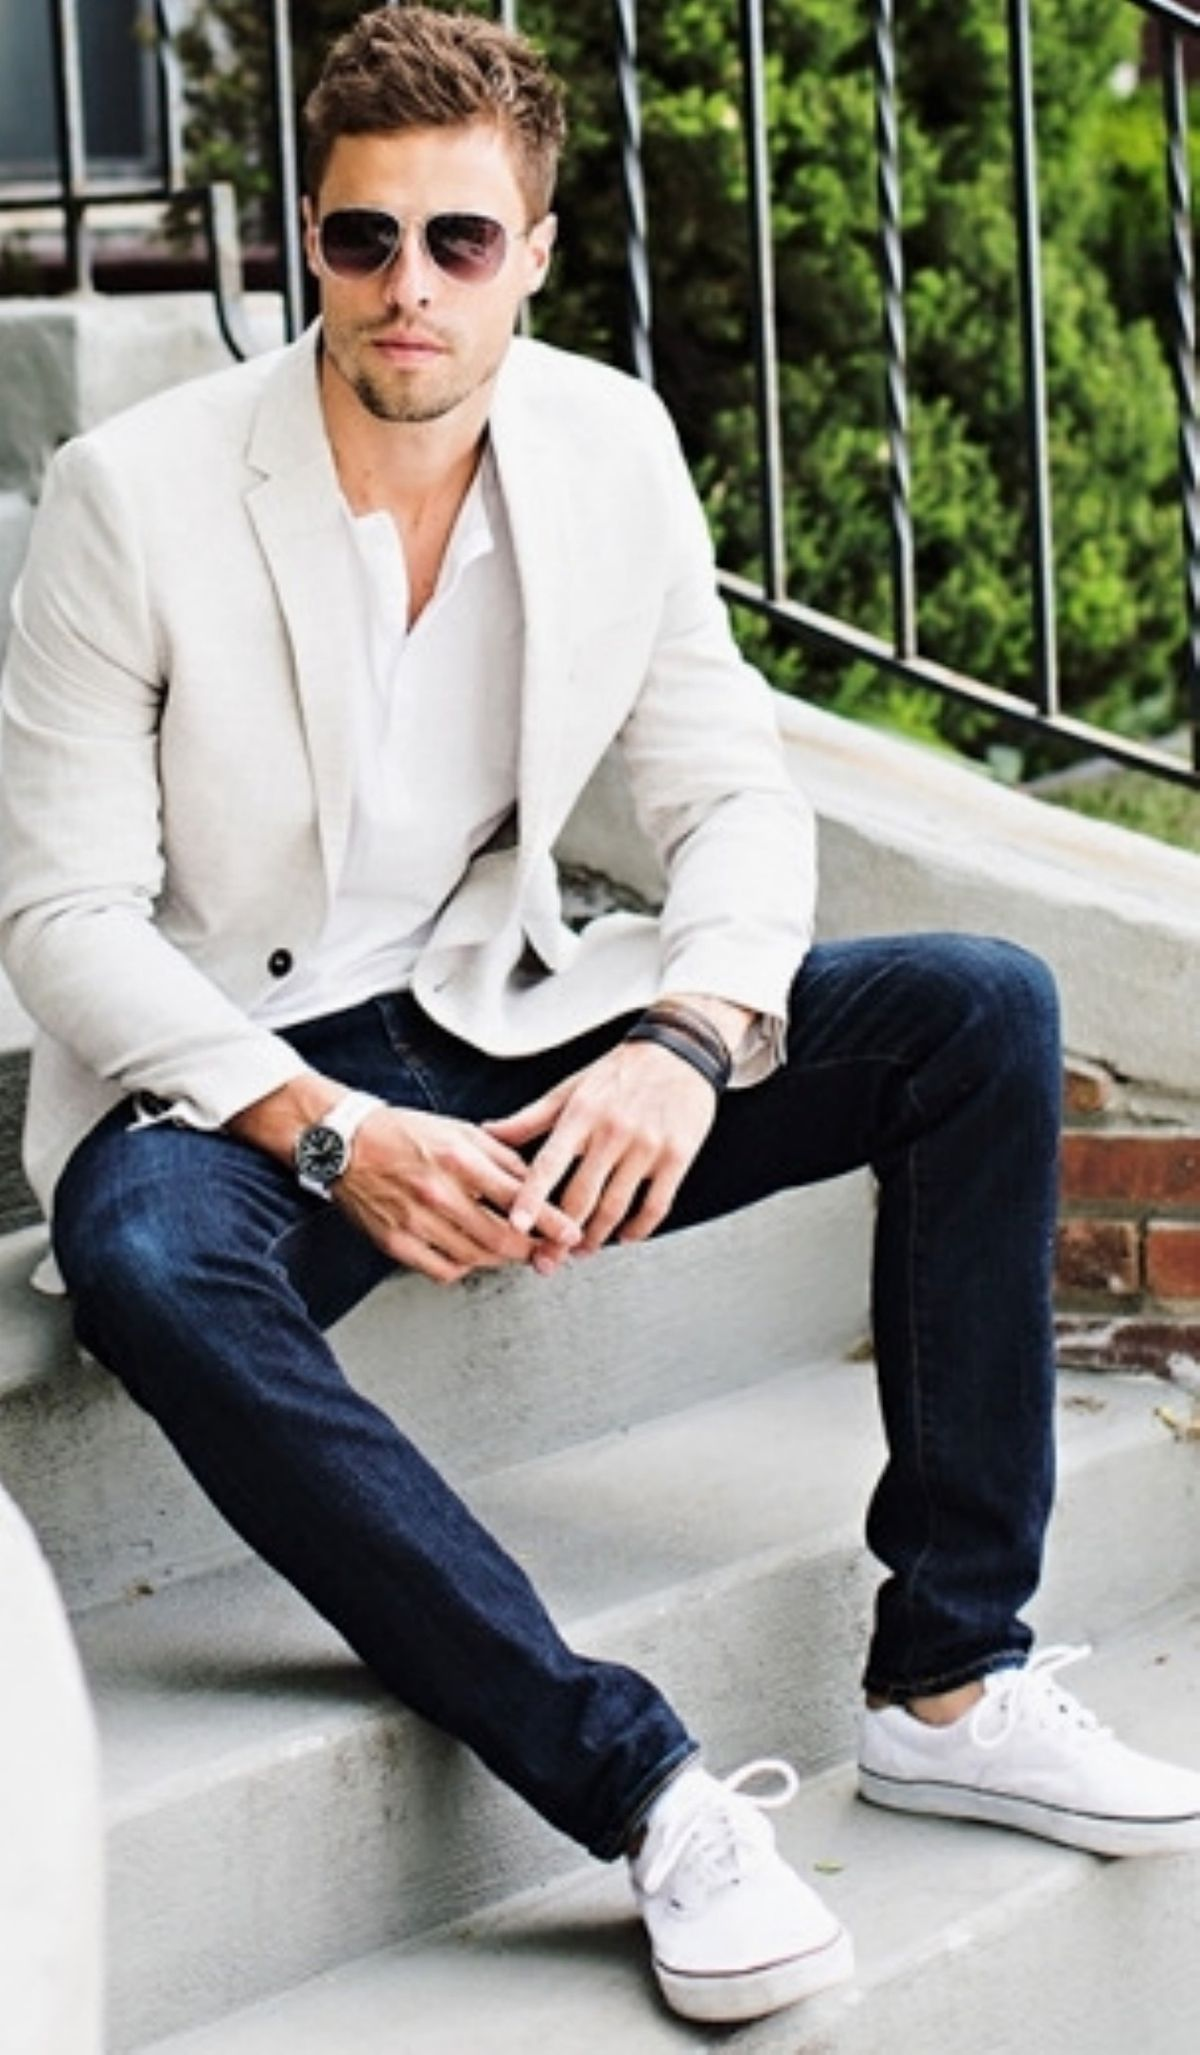 c9bfacd2b021 Cool 26 Amazing Mens Casual Outfits for Summer from https   www.fashionetter